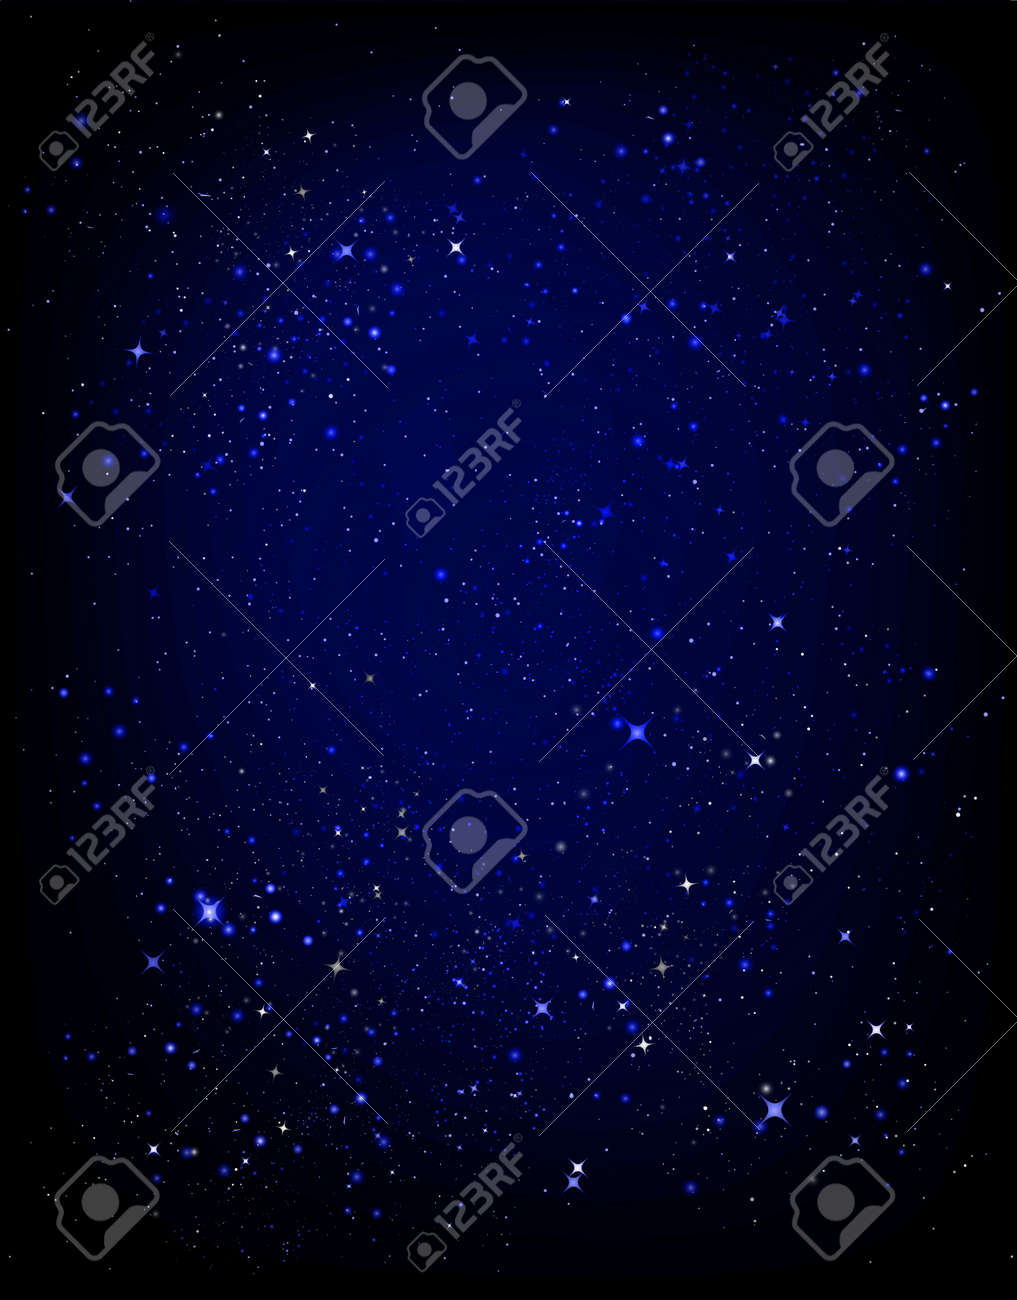 star field background Stock Photo - 7859962